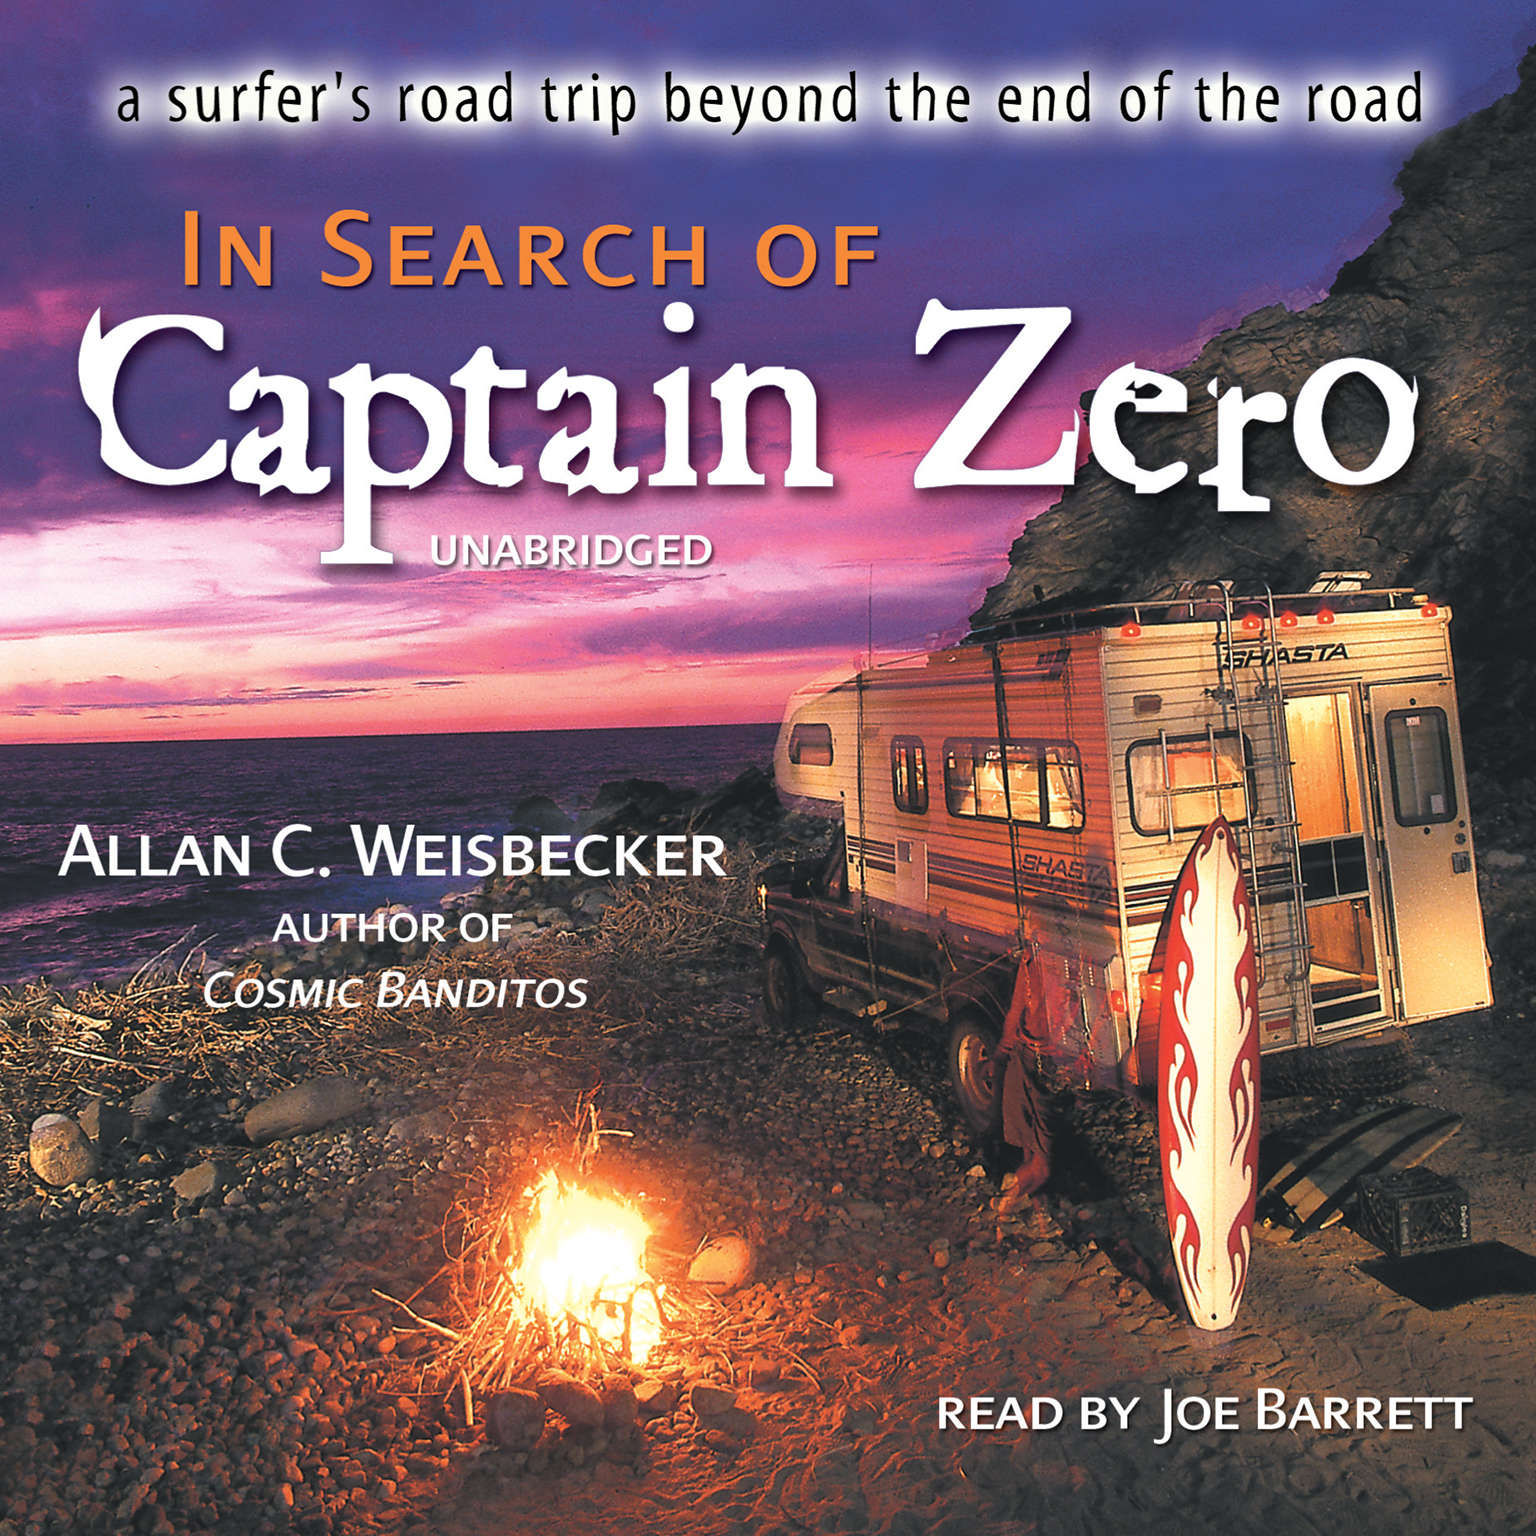 Printable In Search of Captain Zero: A Surfer's Road Trip beyond the End of the Road Audiobook Cover Art